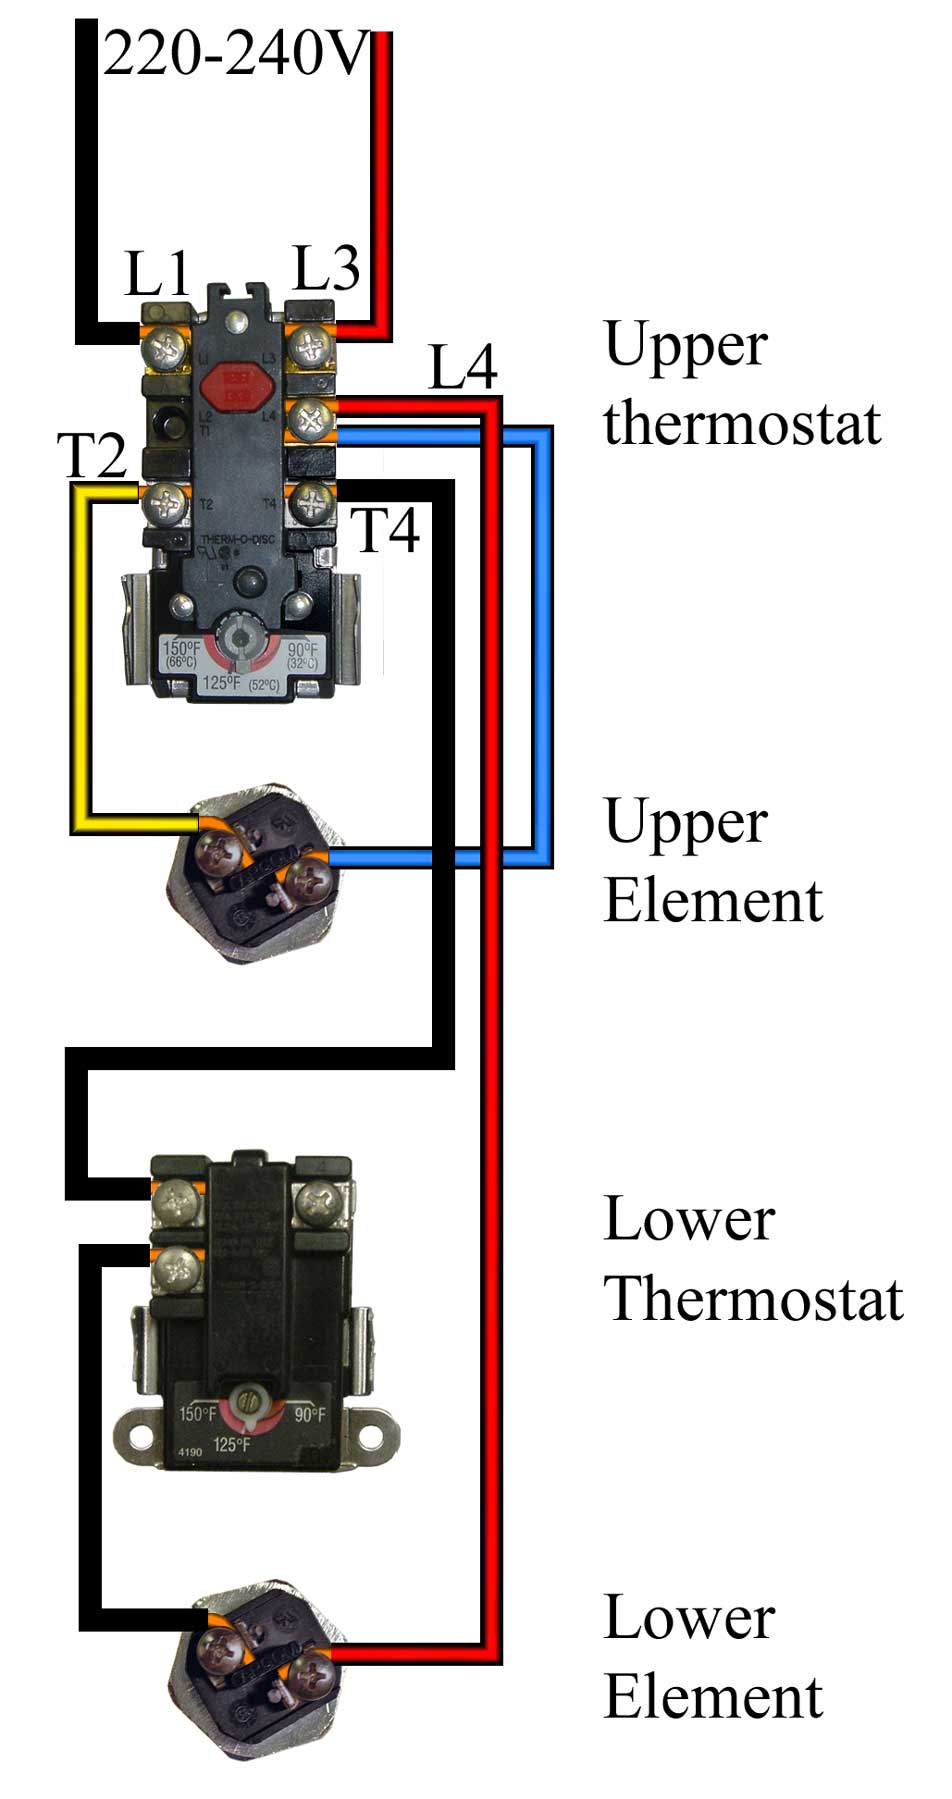 Rheem Water Heater Thermostat Wiring Diagram Simple Schema Heat Pump Guide And Troubleshooting